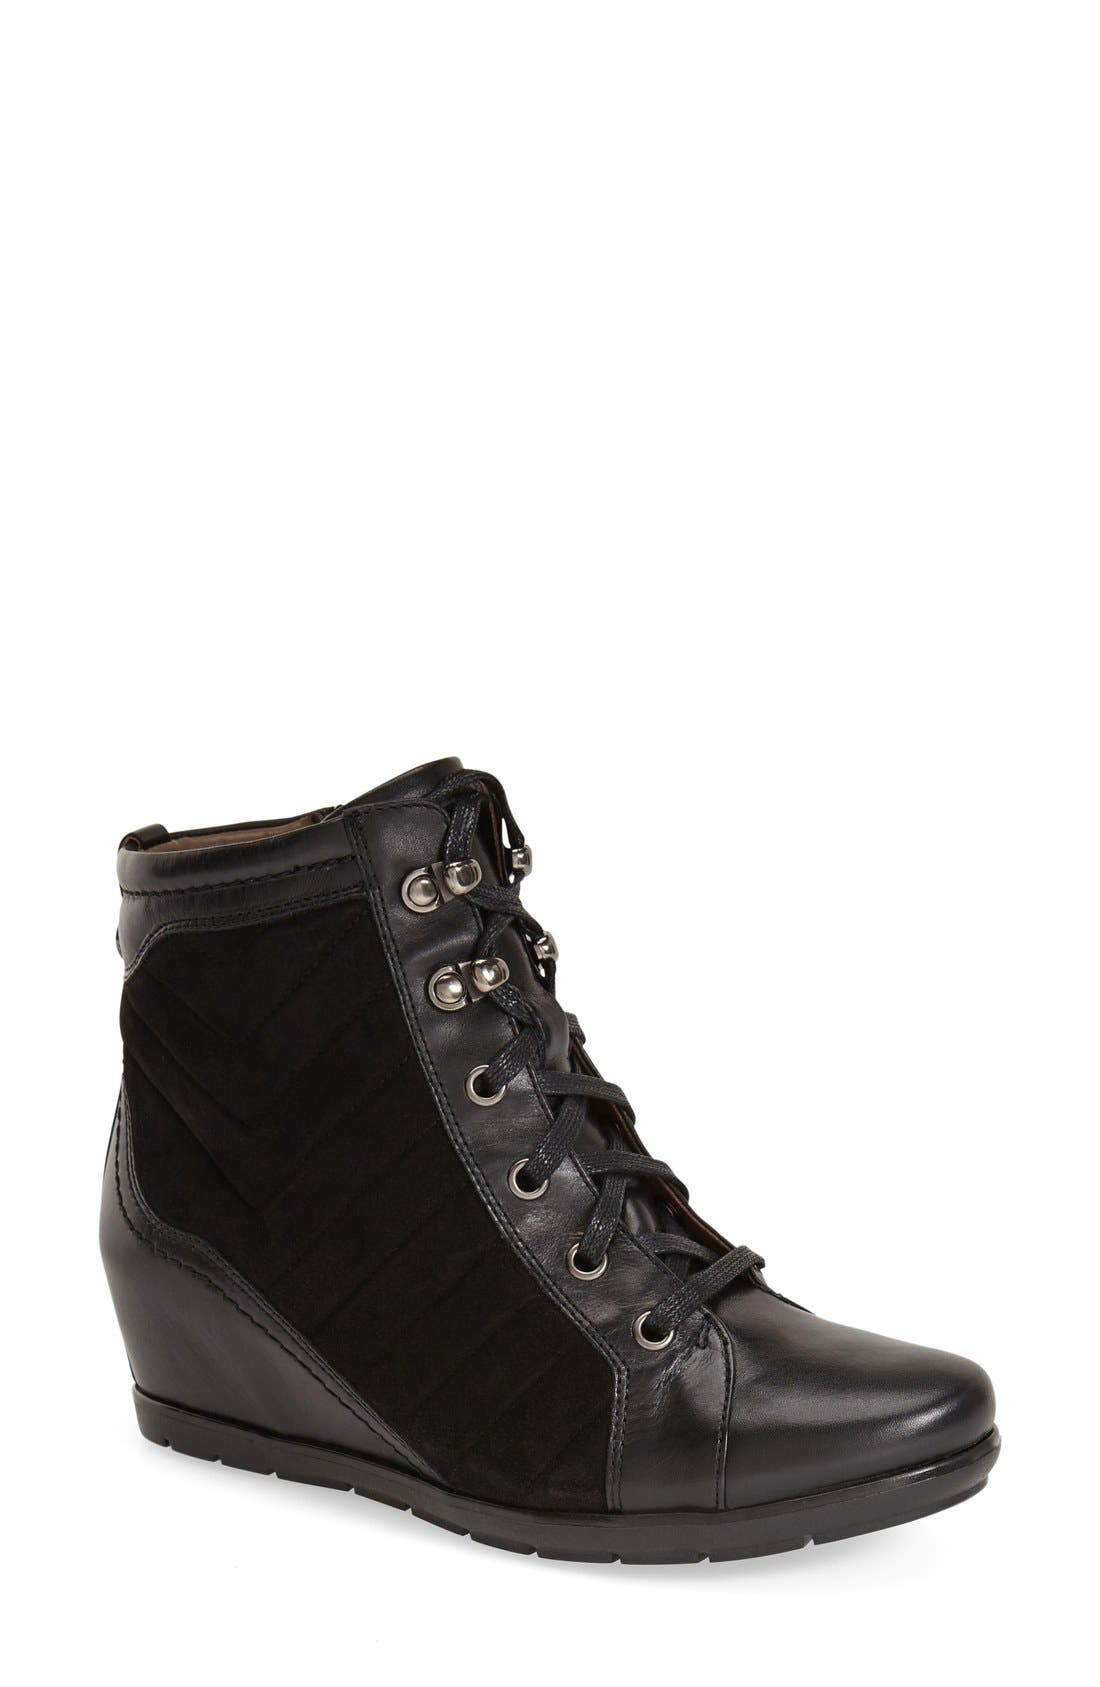 Main Image - Earthies® 'Limburg' Wedge Bootie (Women)